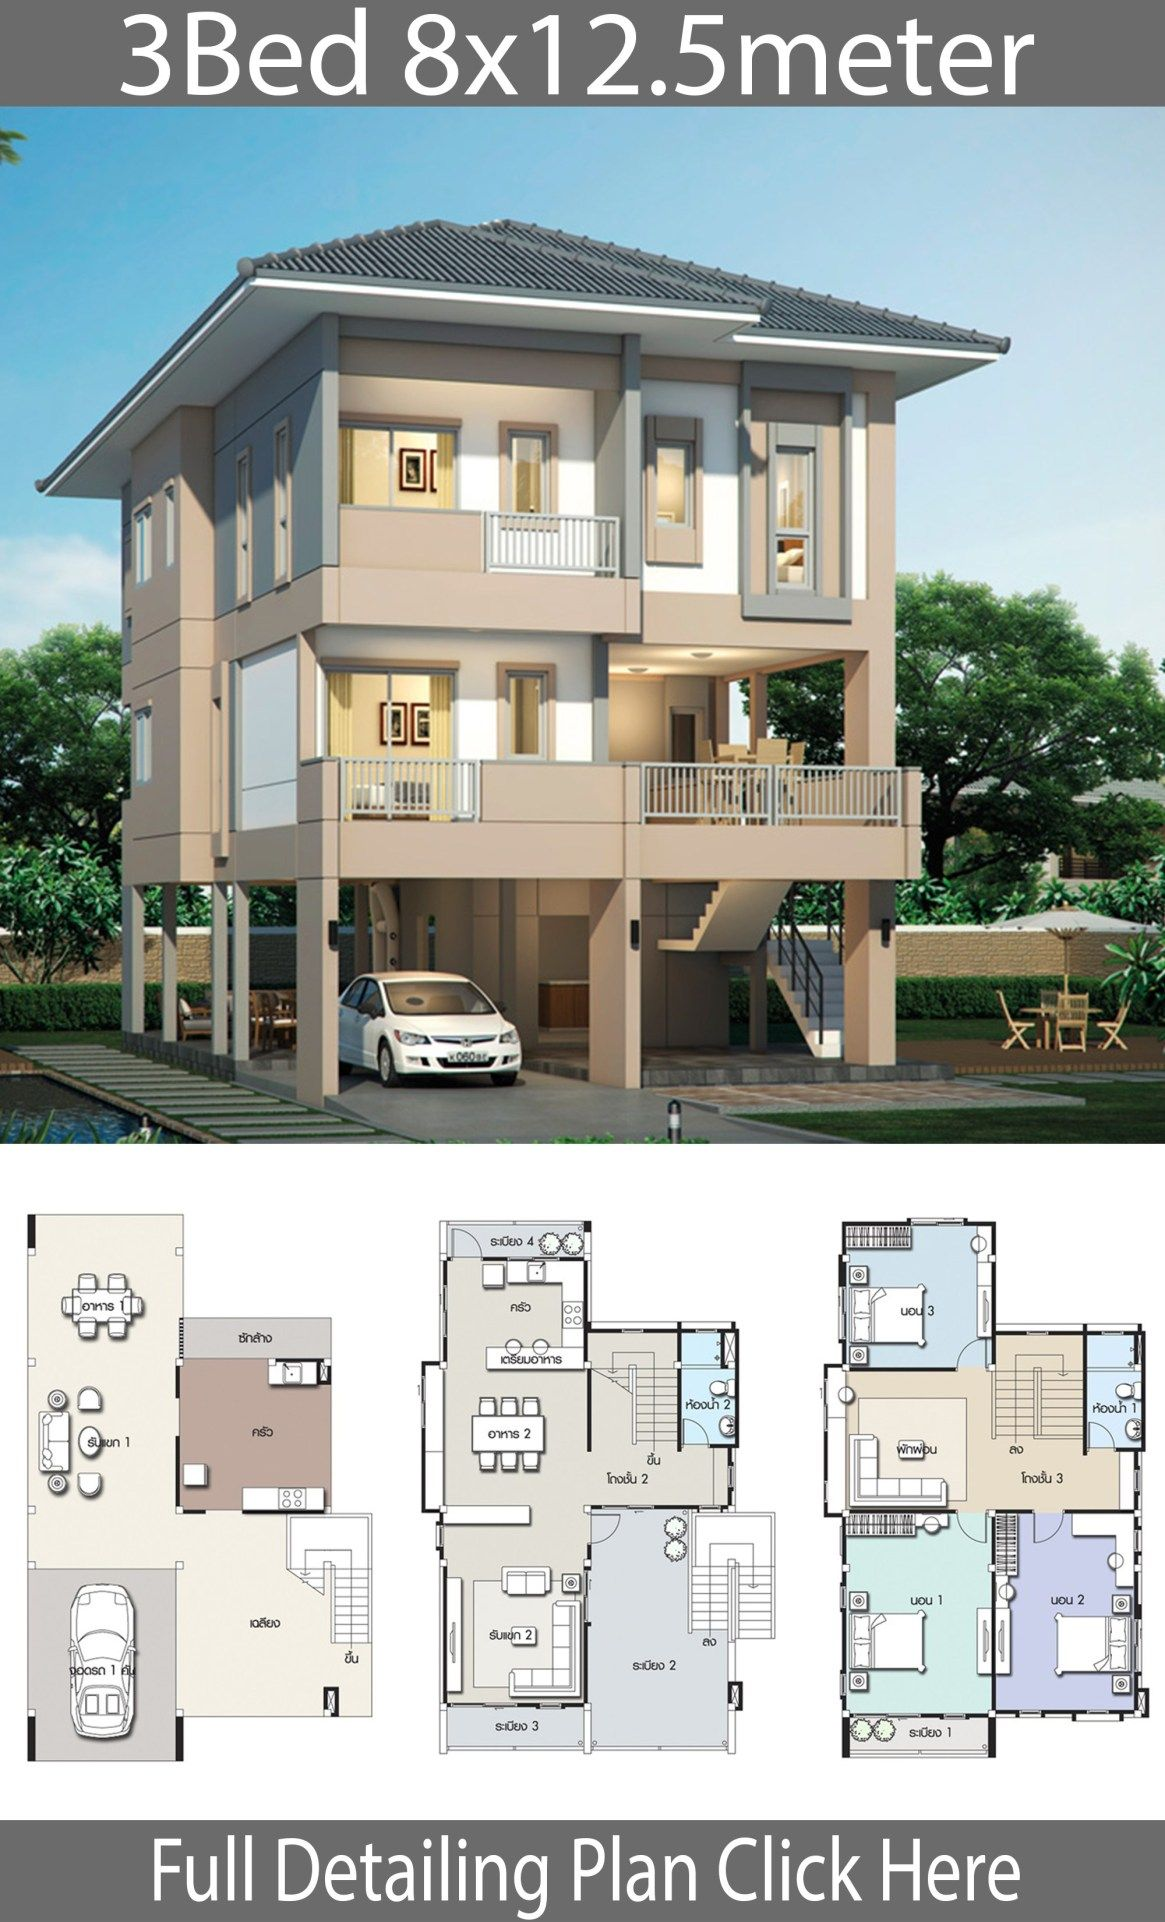 House Design Plan 8x12 5m With 3 Bedrooms Home Design With Plansearch 3 Storey House Design Model House Plan Architectural House Plans